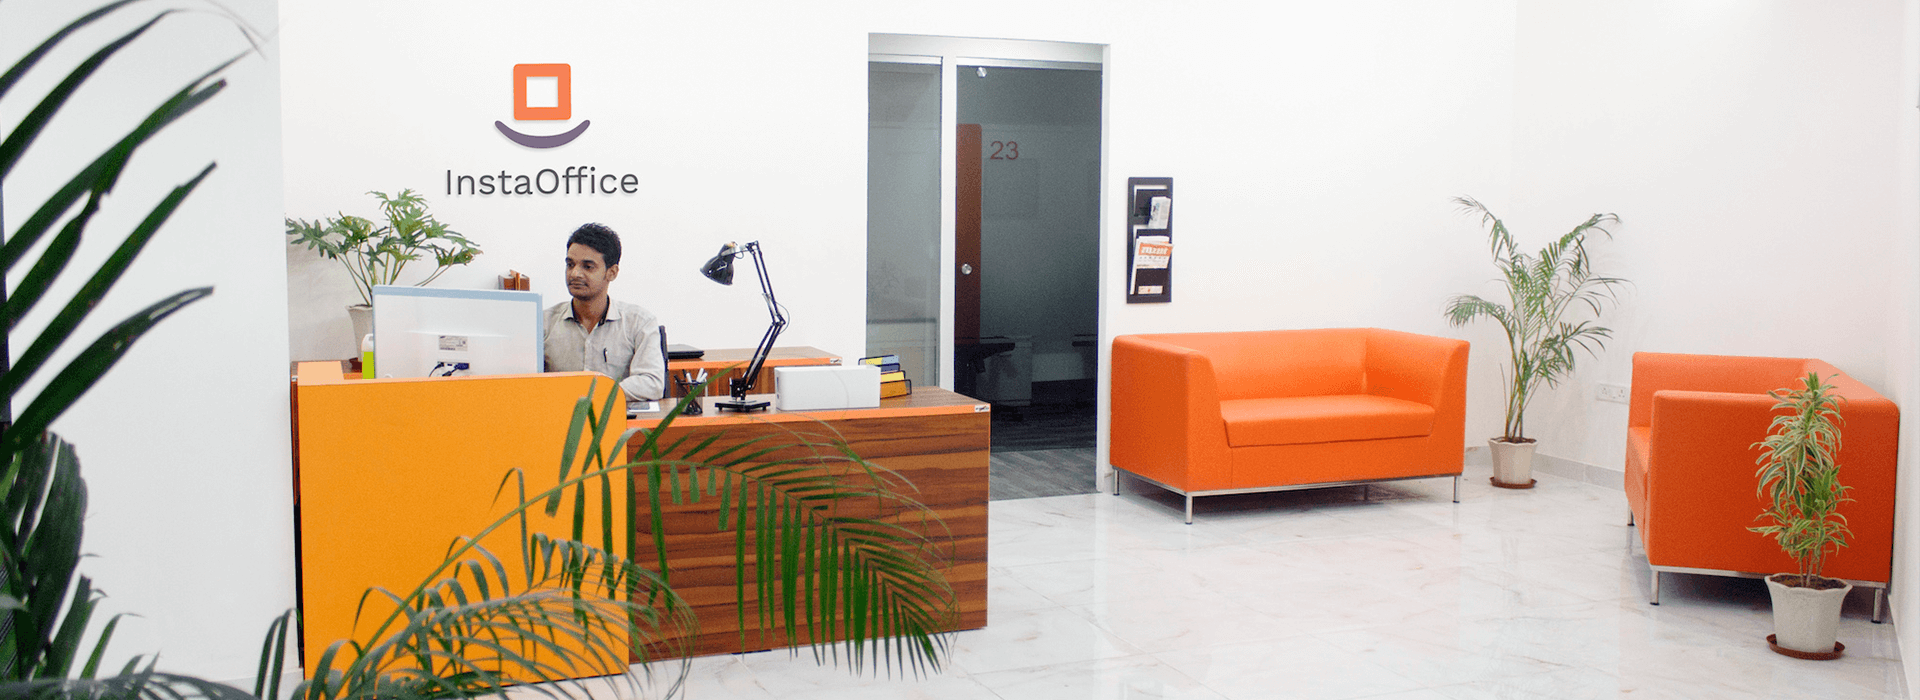 Coworking spaces from InstaOffice in Gurgaon